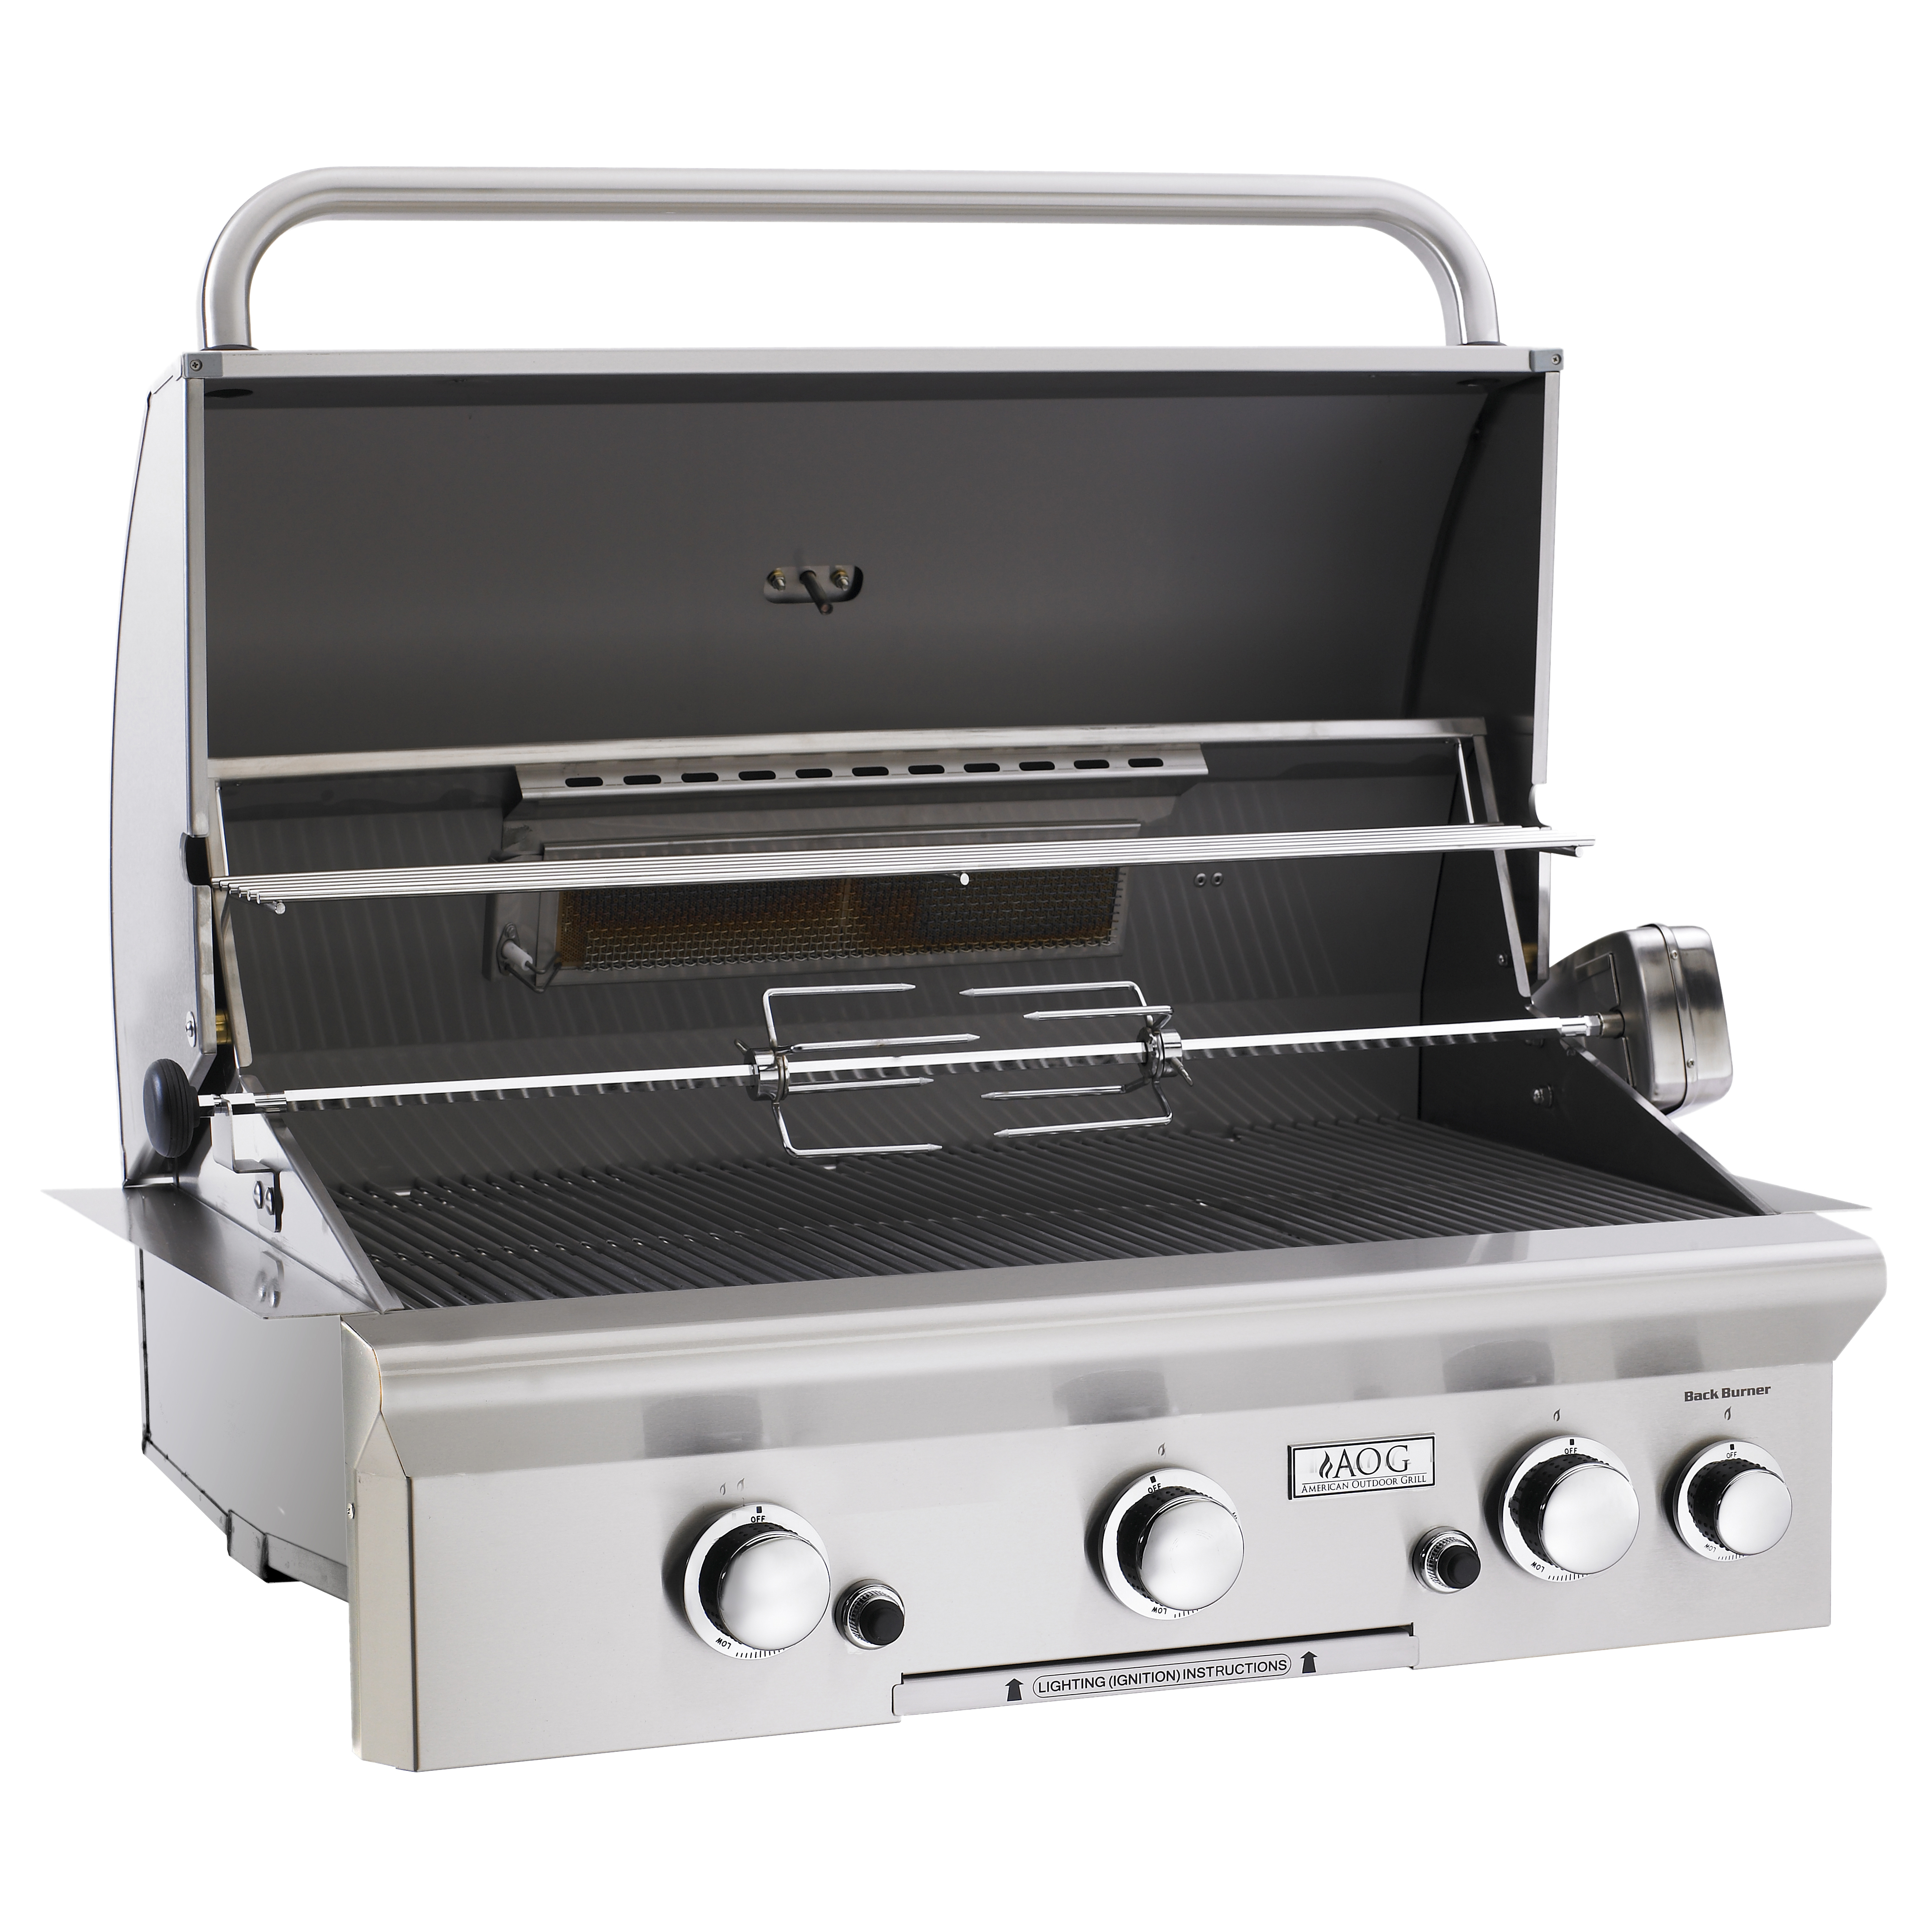 Aog quot t series stainless steel built in natural gas